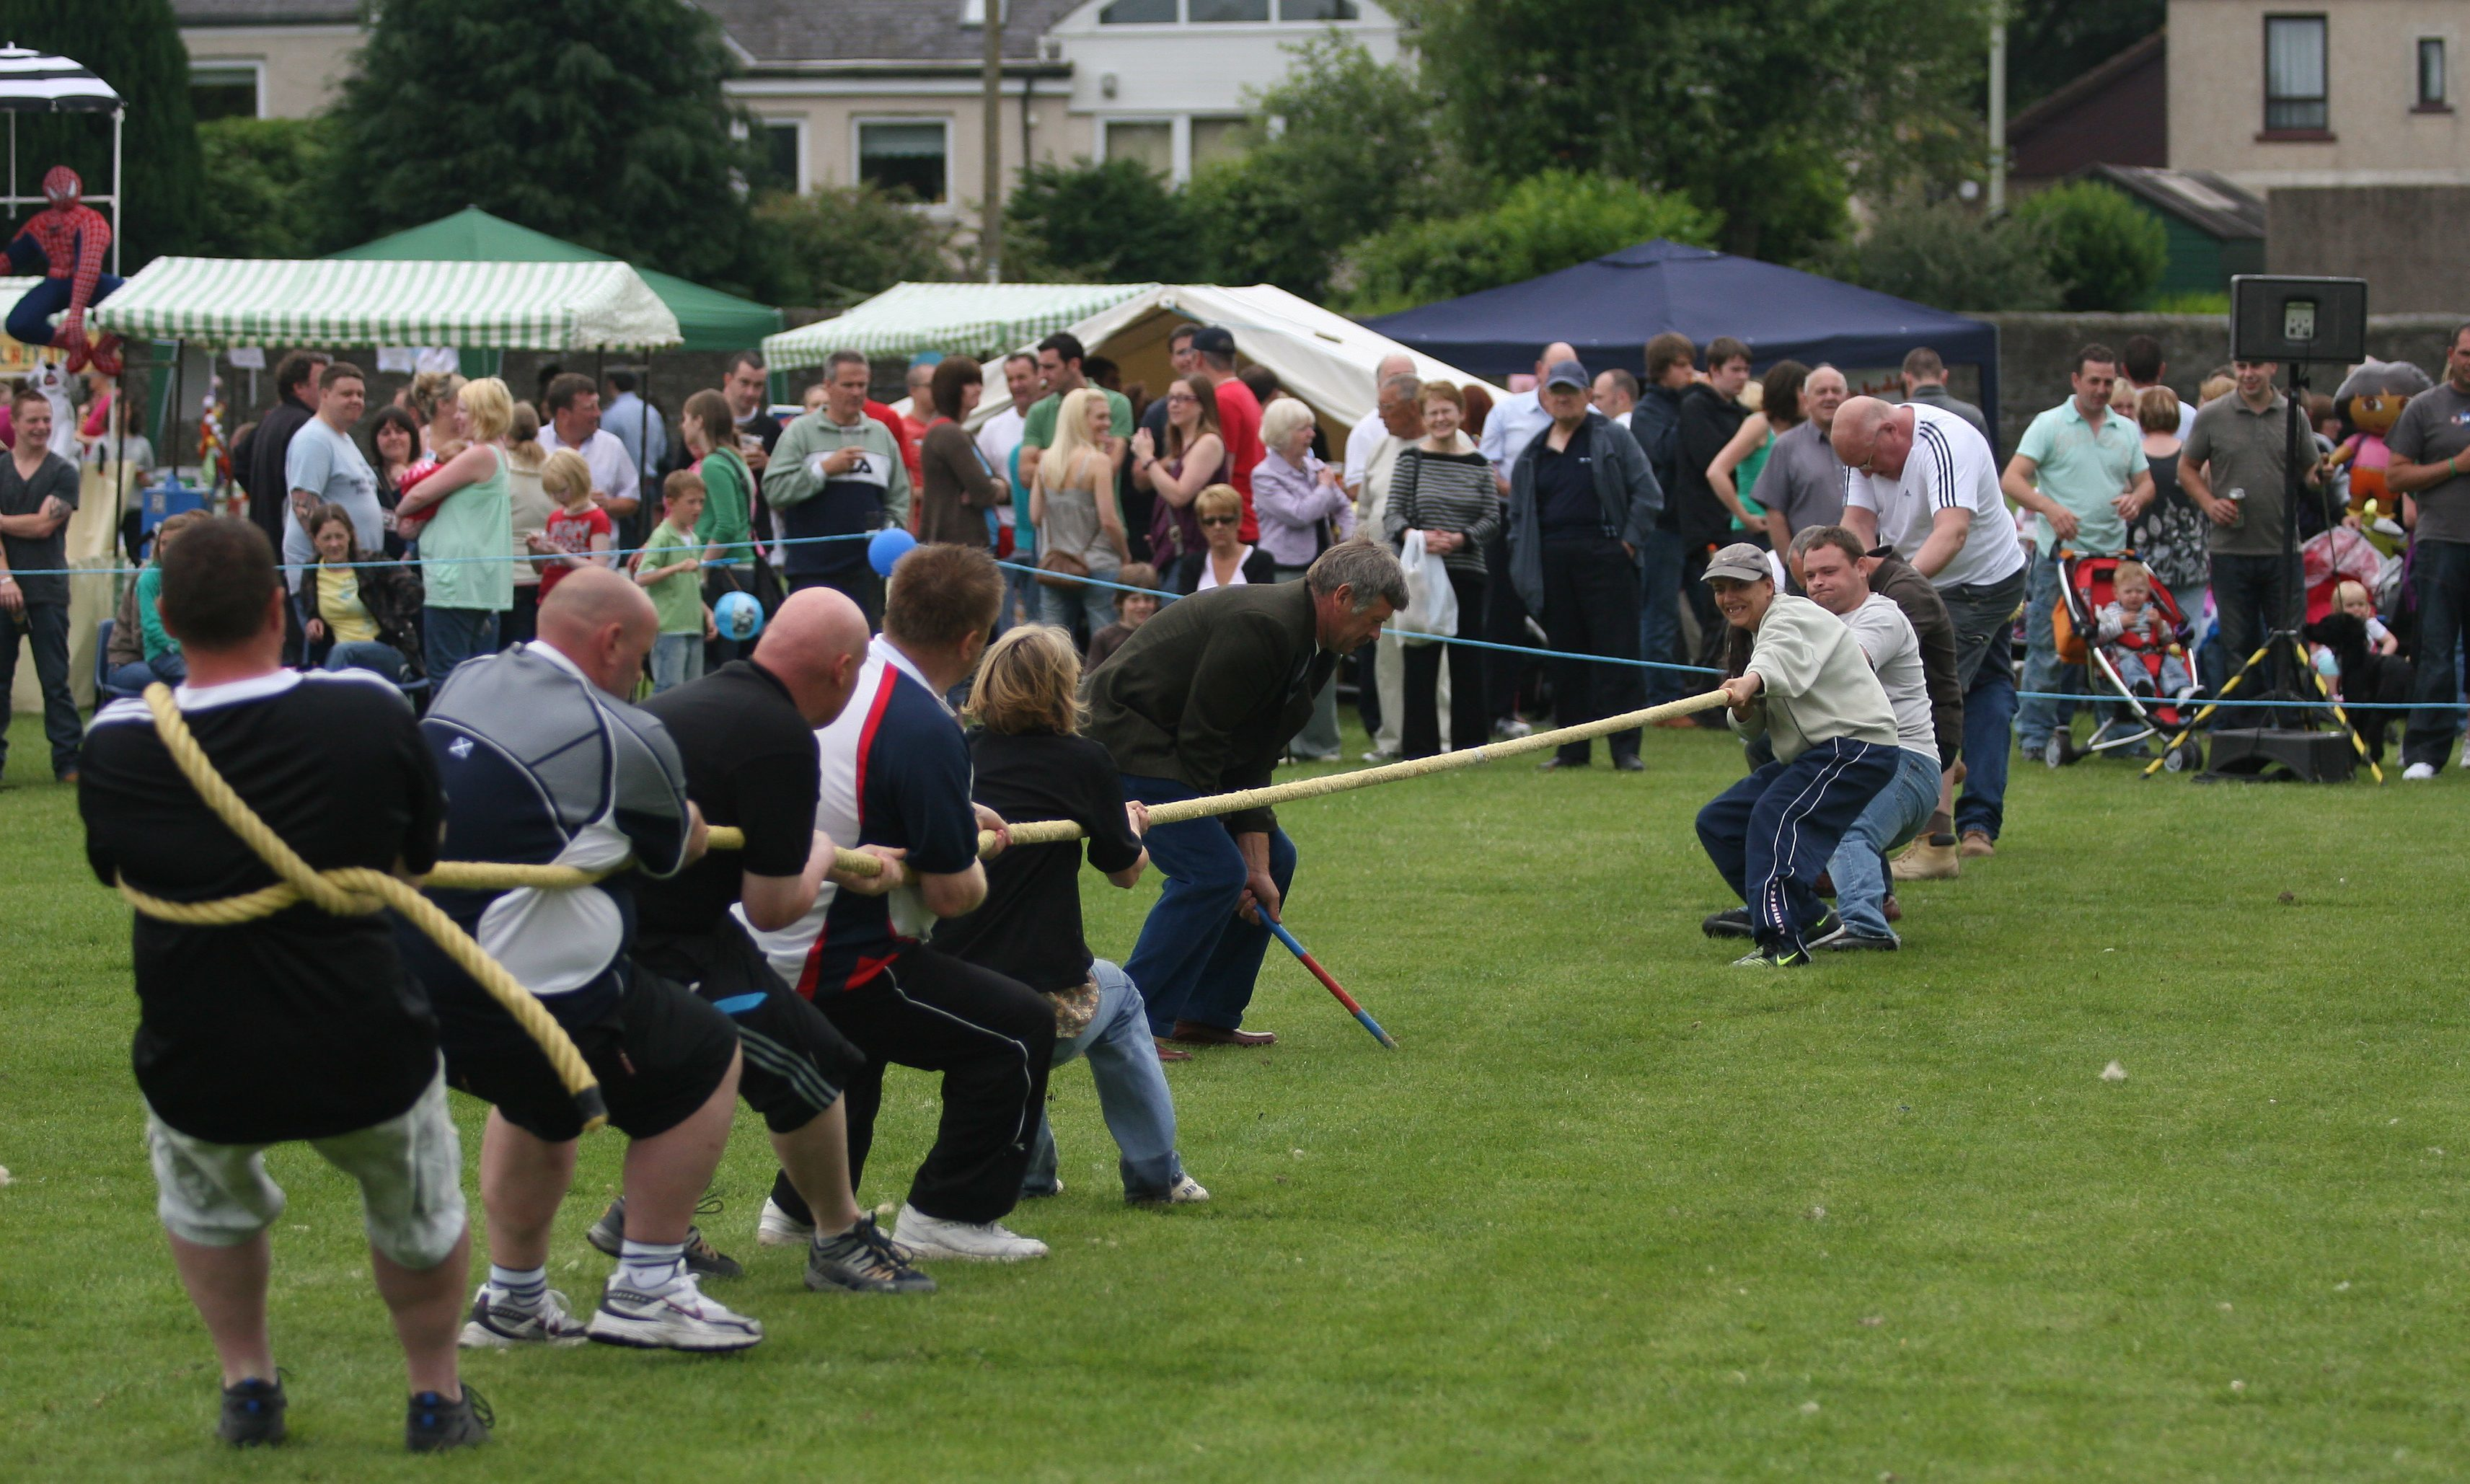 Action from the tug of war at Gala day in 2009, the final part of Gala week in Forfar